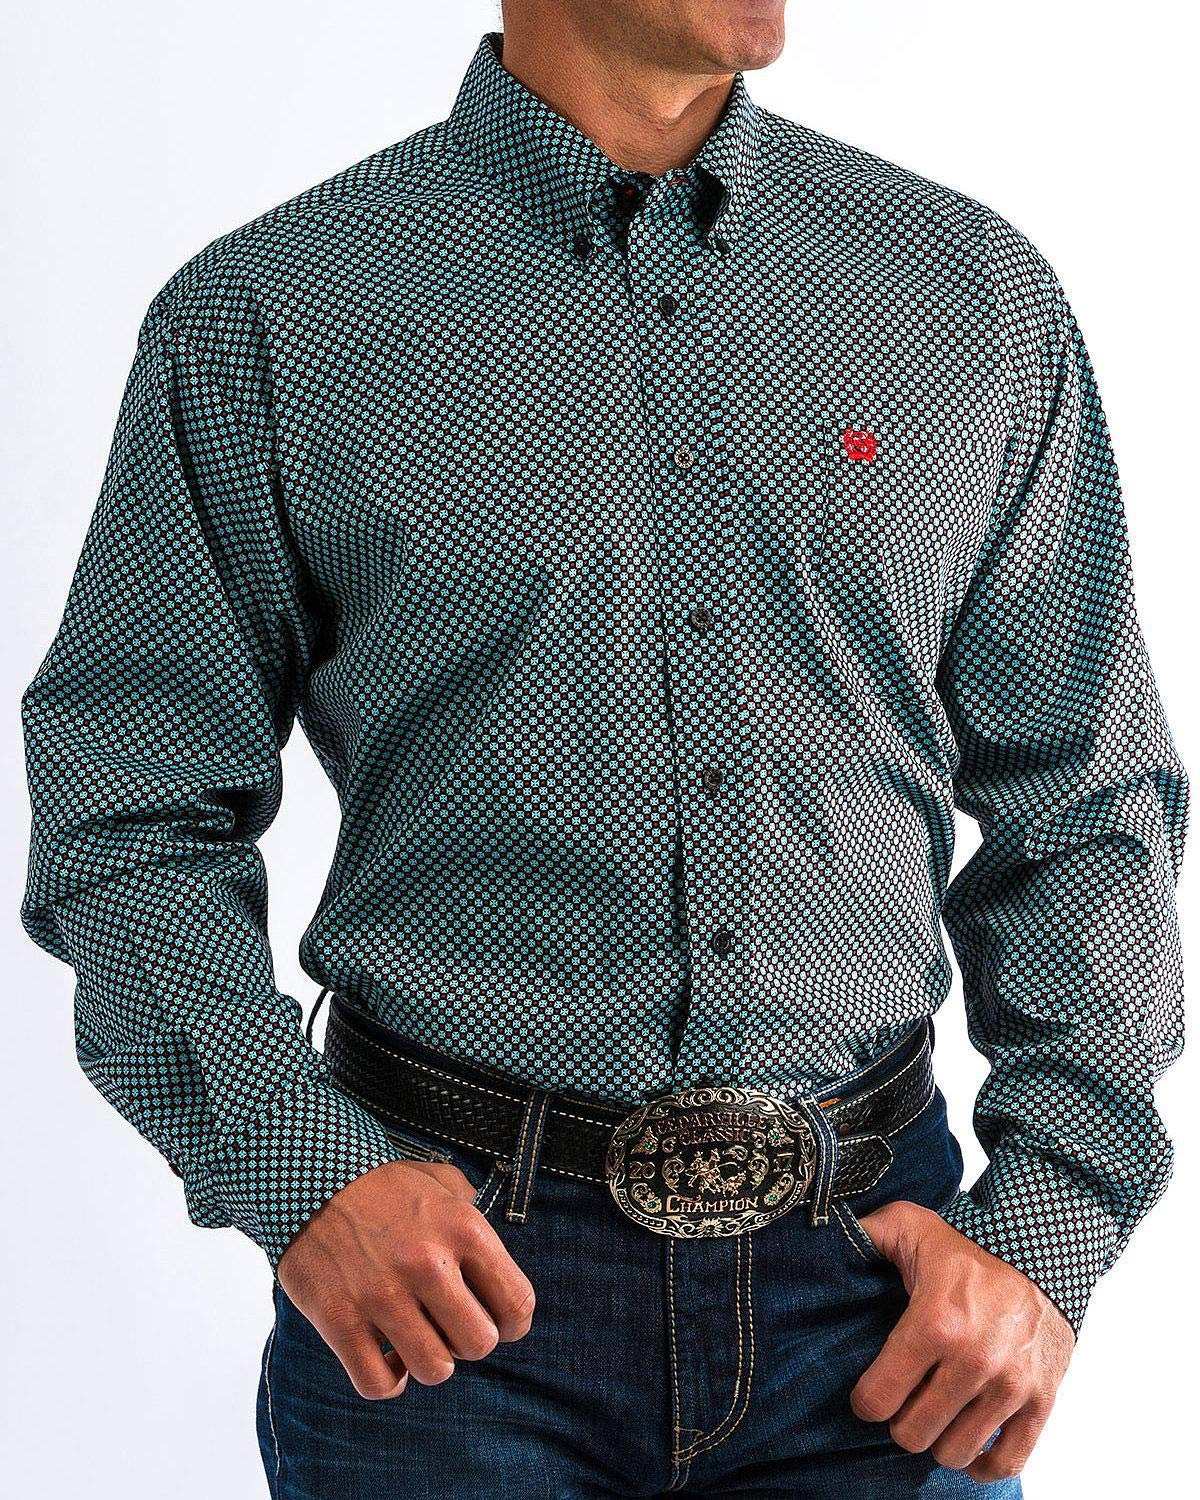 Cinch Men's Classic Fit Long Sleeve Button One Open Pocket Print Shirt, Teal/Black/Red, XL